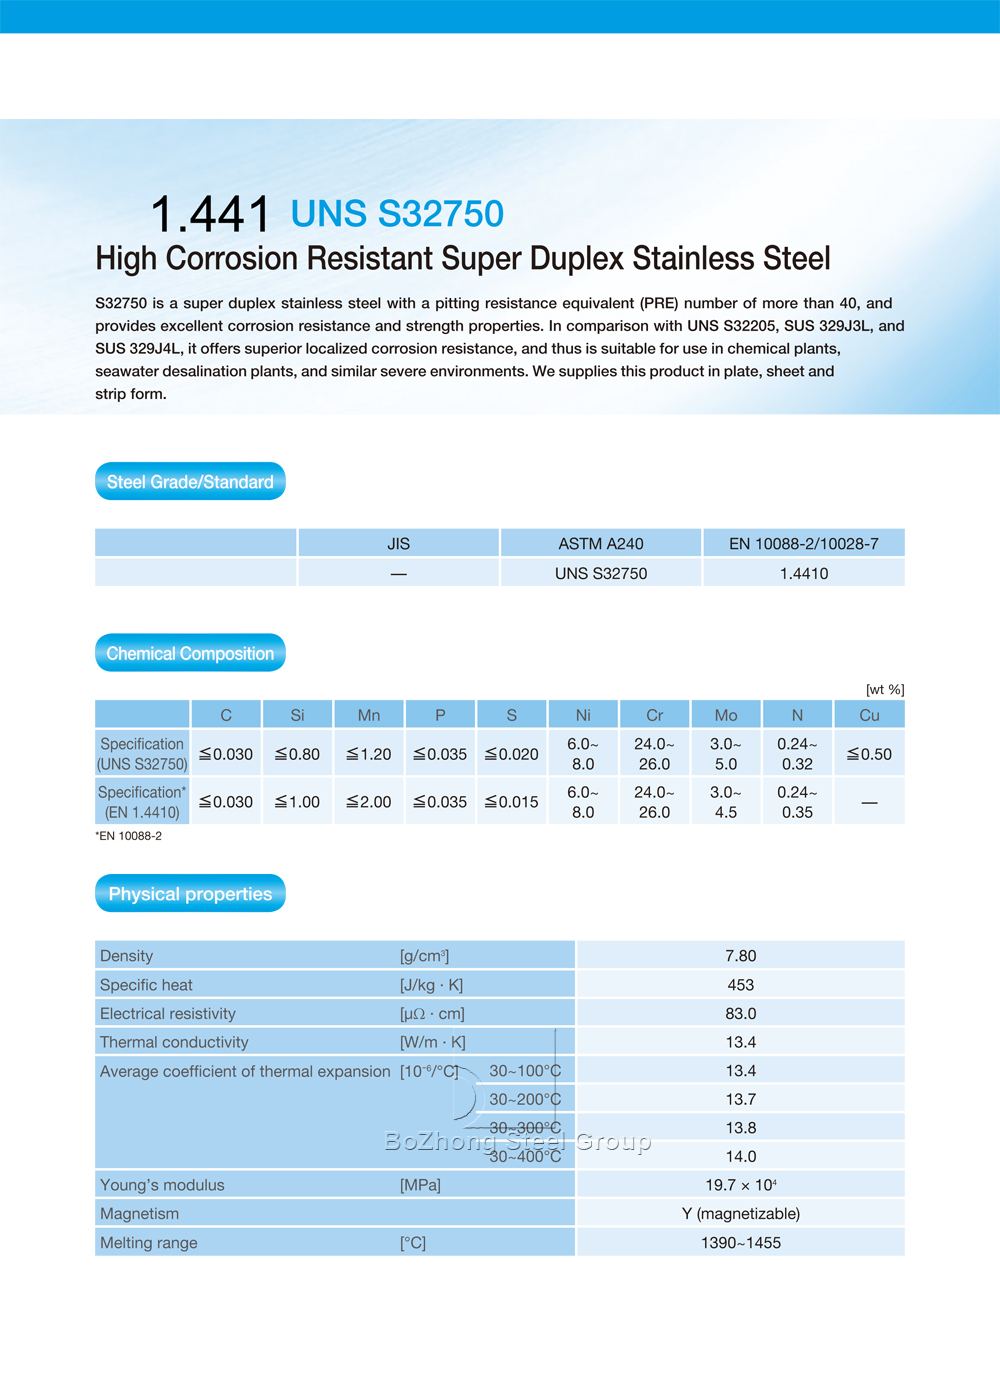 1441,-S32750-Corrosion-Resistant-Alloys-High-Efficiency